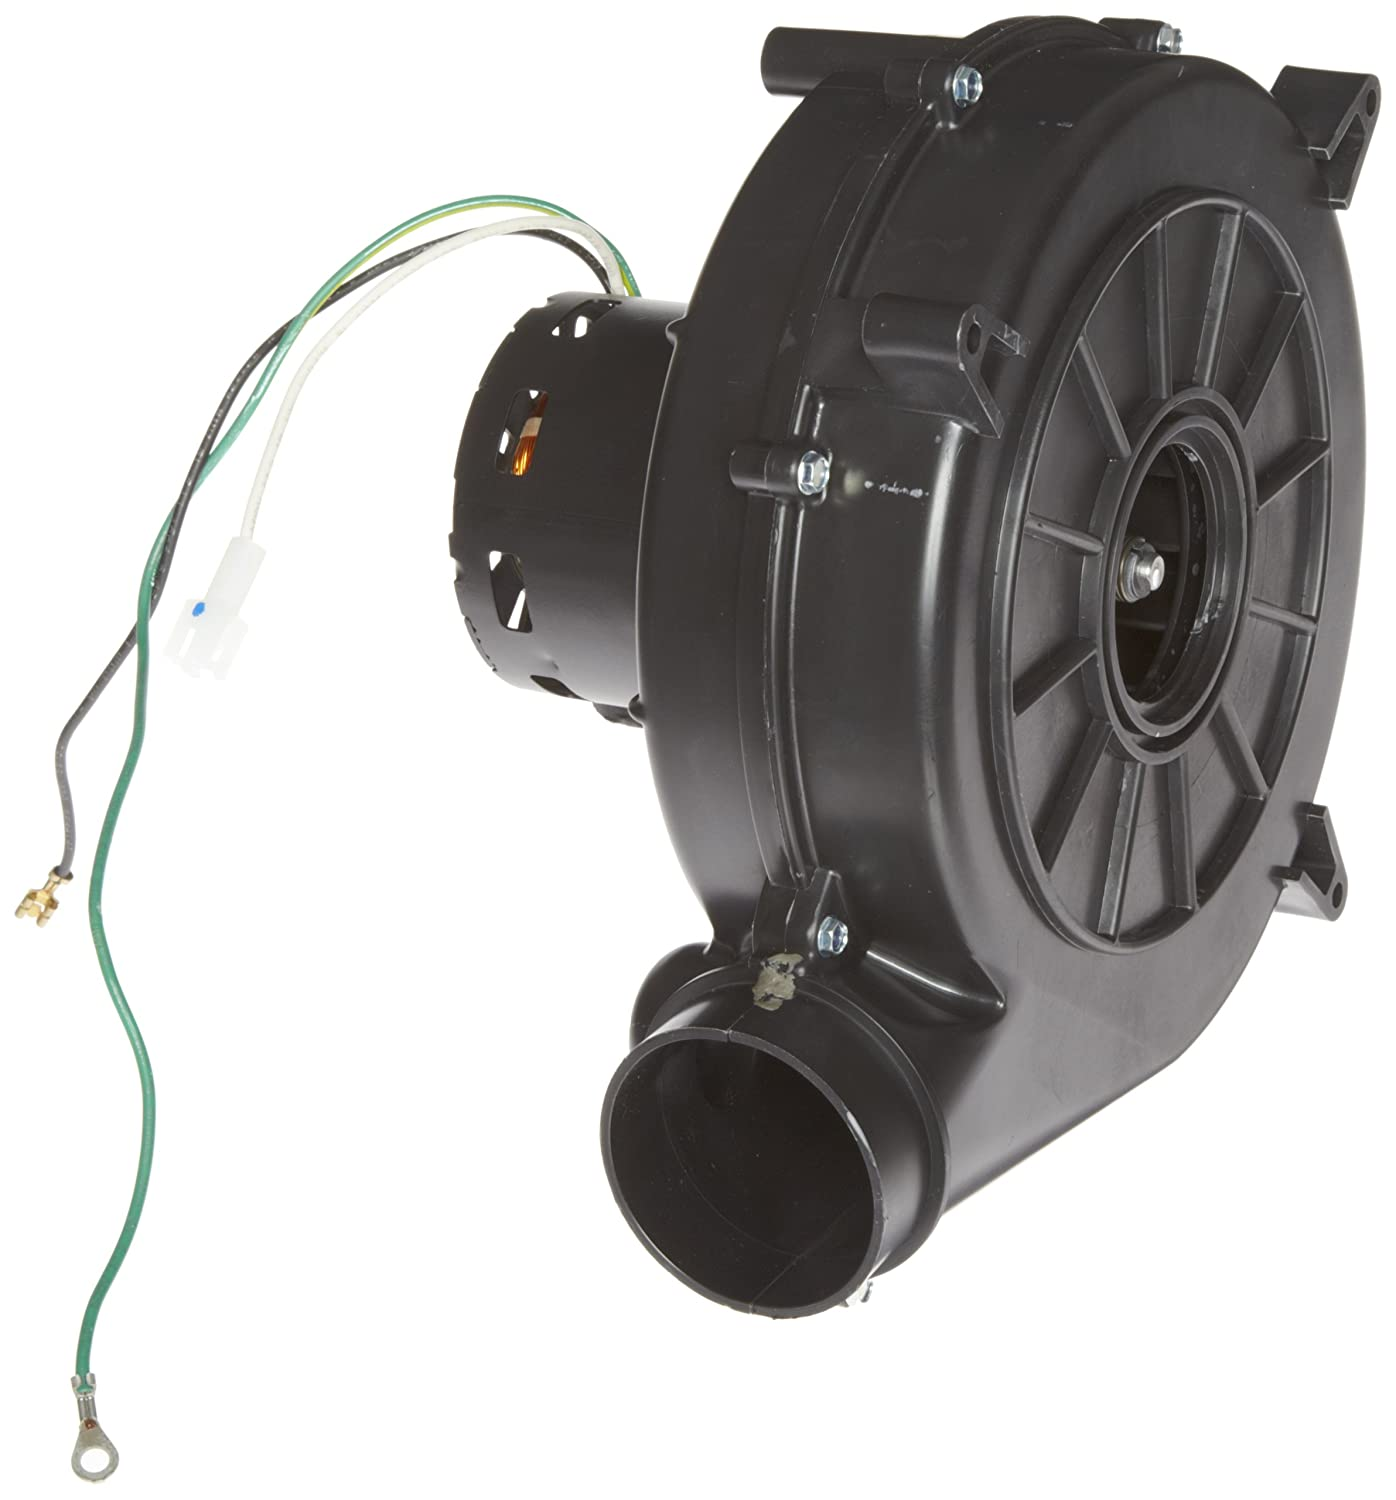 "Fasco A195 3.3"" Frame Shaded Pole OEM Replacement Specific Purpose Blower with Ball Bearing, 1/16HP, 3400rpm, 115V, 60Hz, 1.75 amps"